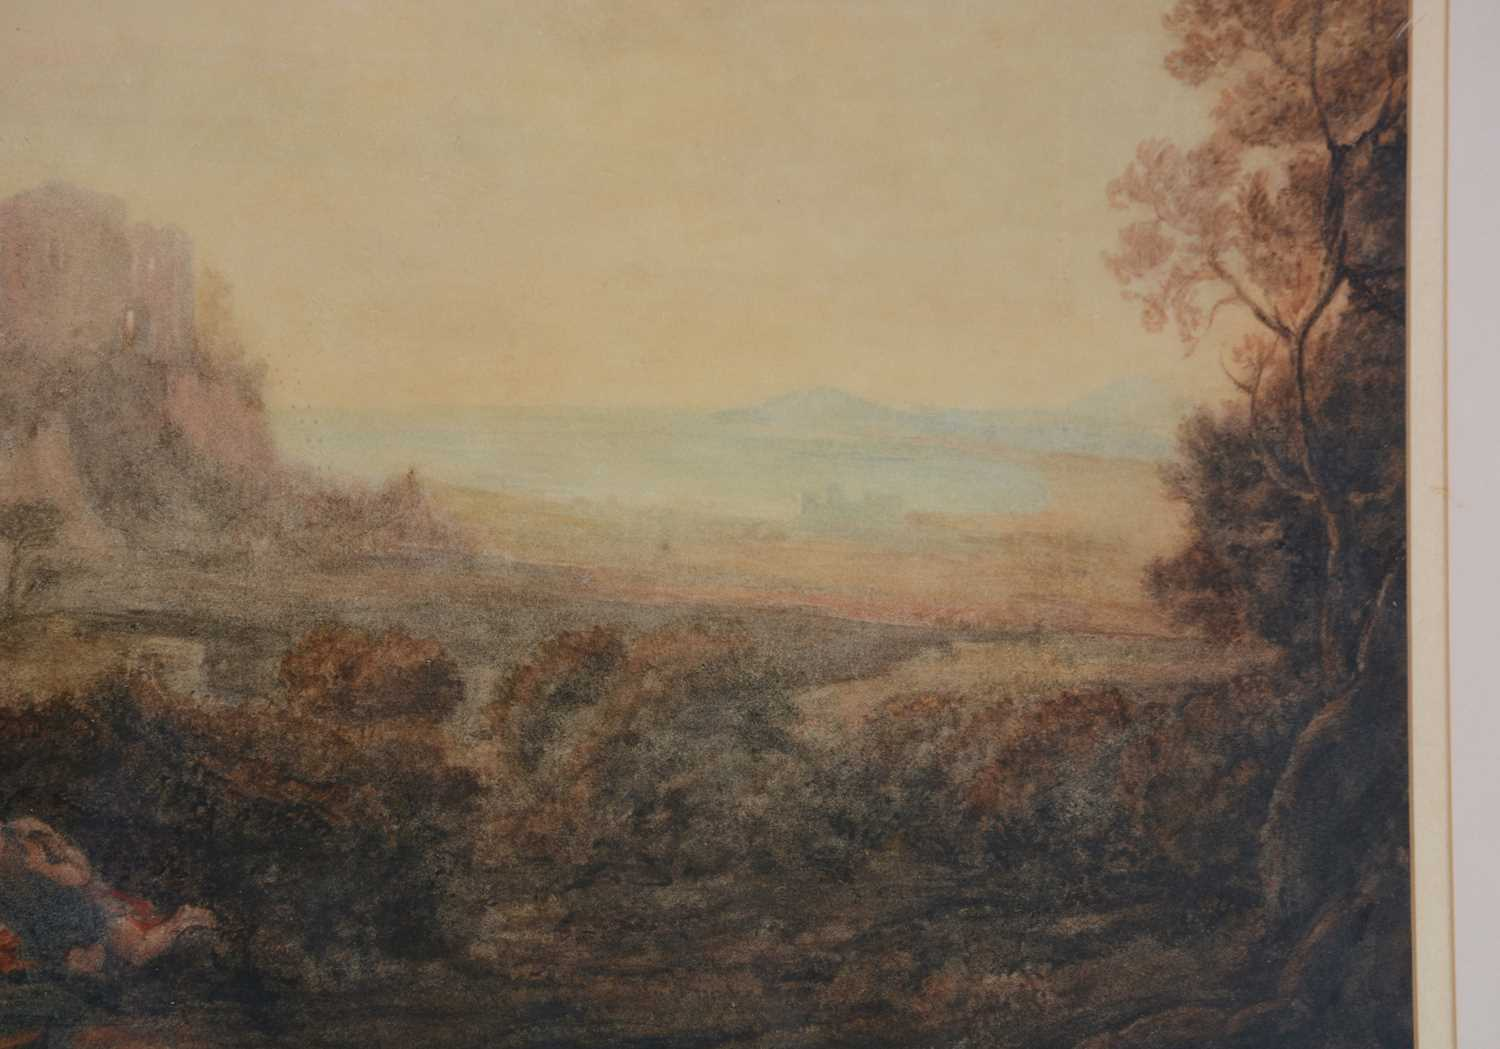 Attributed to Joseph Mallord William Turner, RA - watercolour - Image 3 of 11